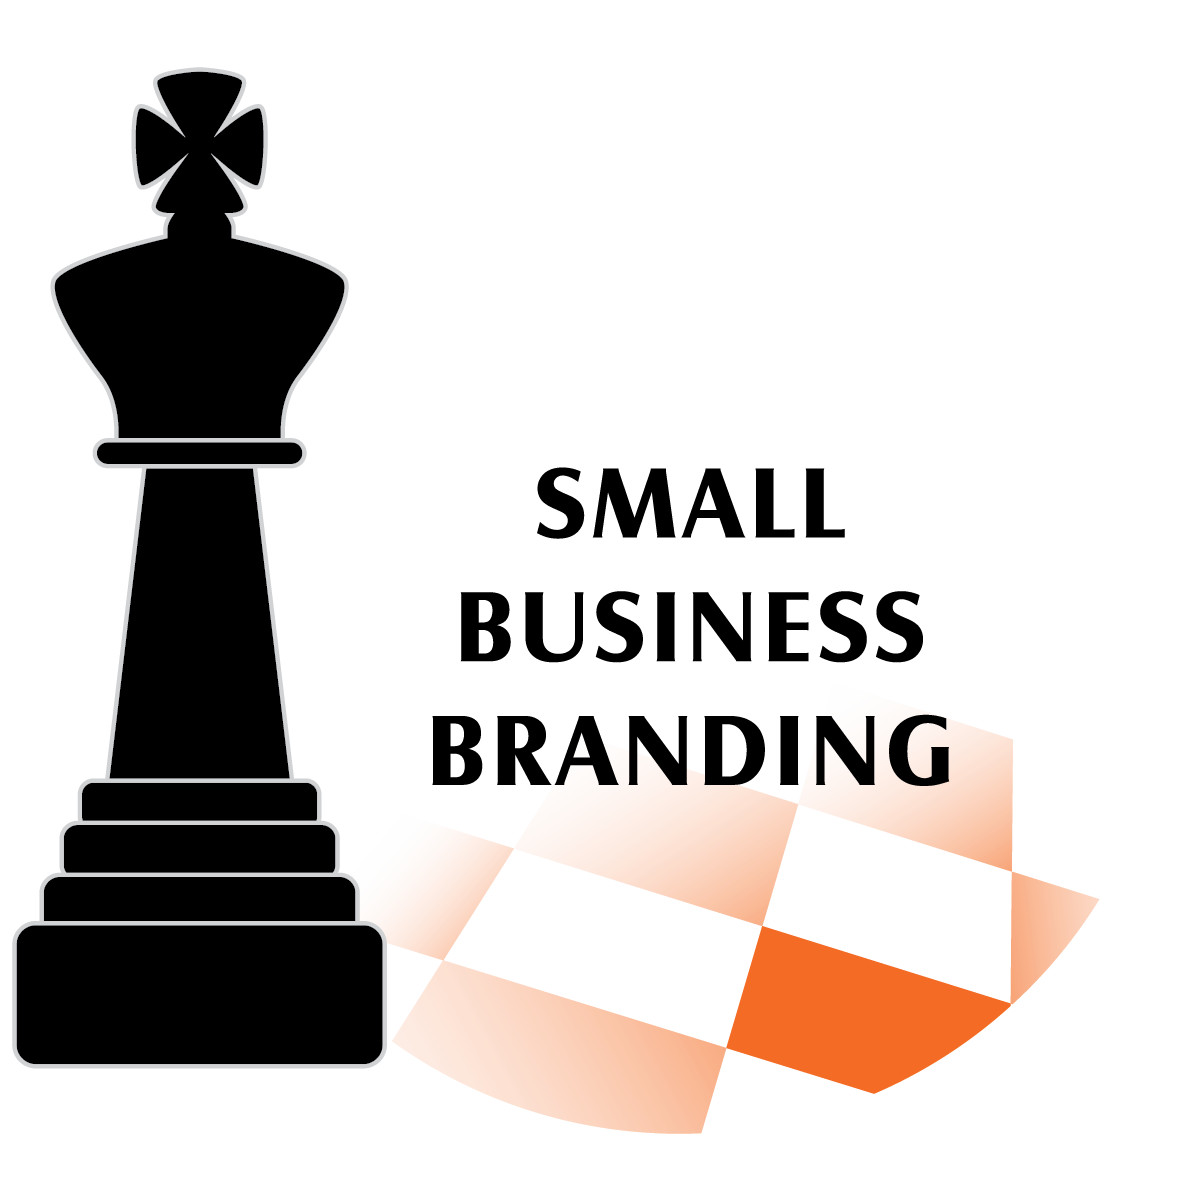 King chess piece Small Business training